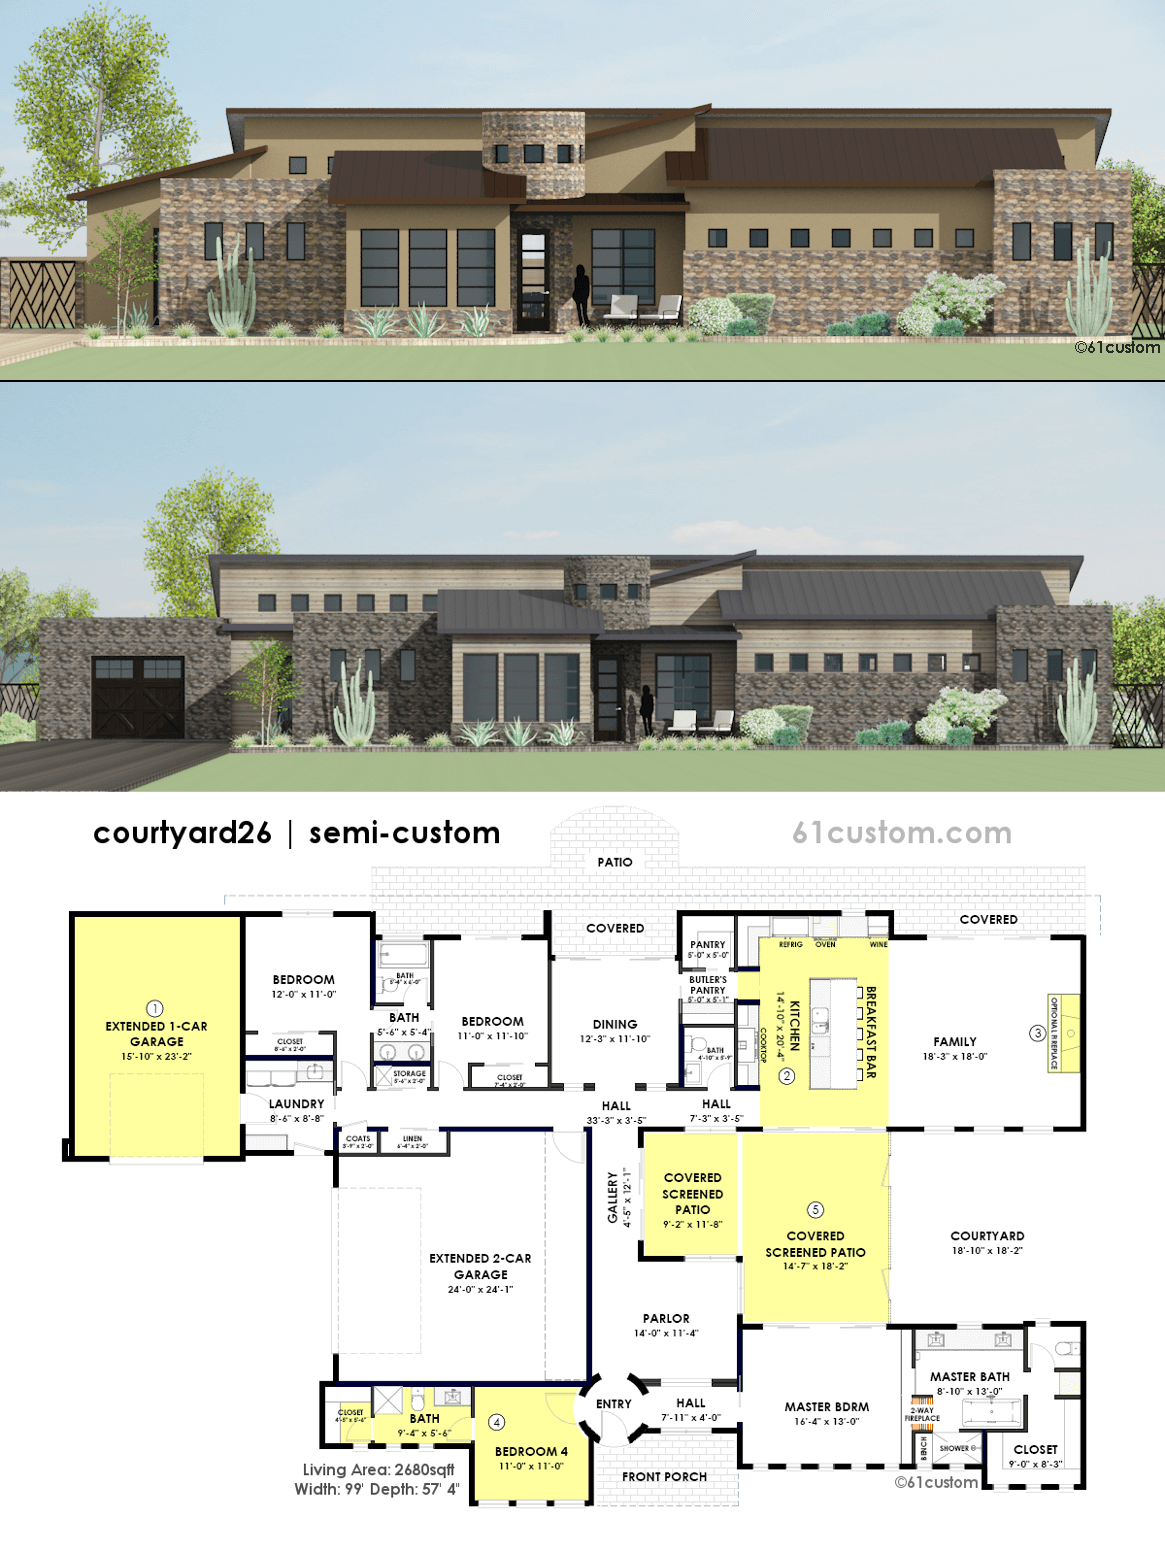 Contemporary side courtyard house plan 61custom for New custom home plans